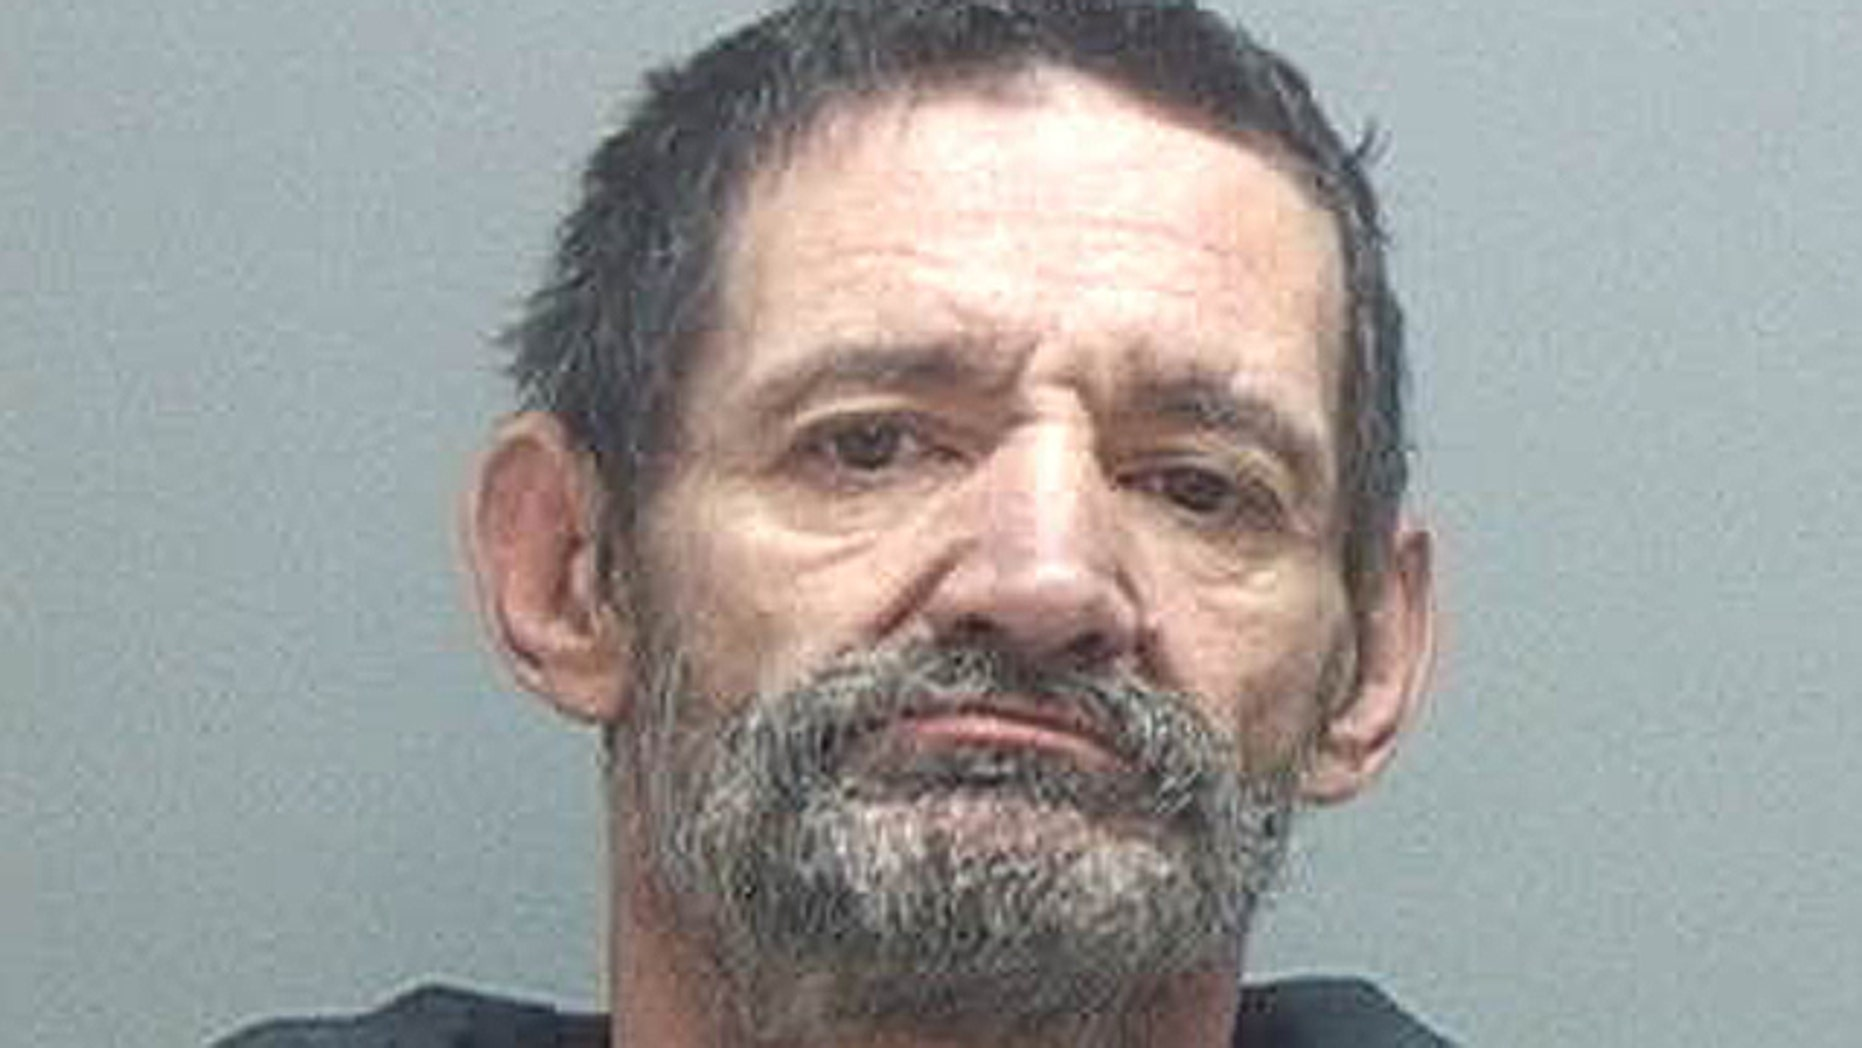 Brian Biff Baker, 52, was charged Friday in Salt Lake City's 3rd District Court with felony counts of drug and weapons possession, along with a misdemeanor count of threatening elected officials.